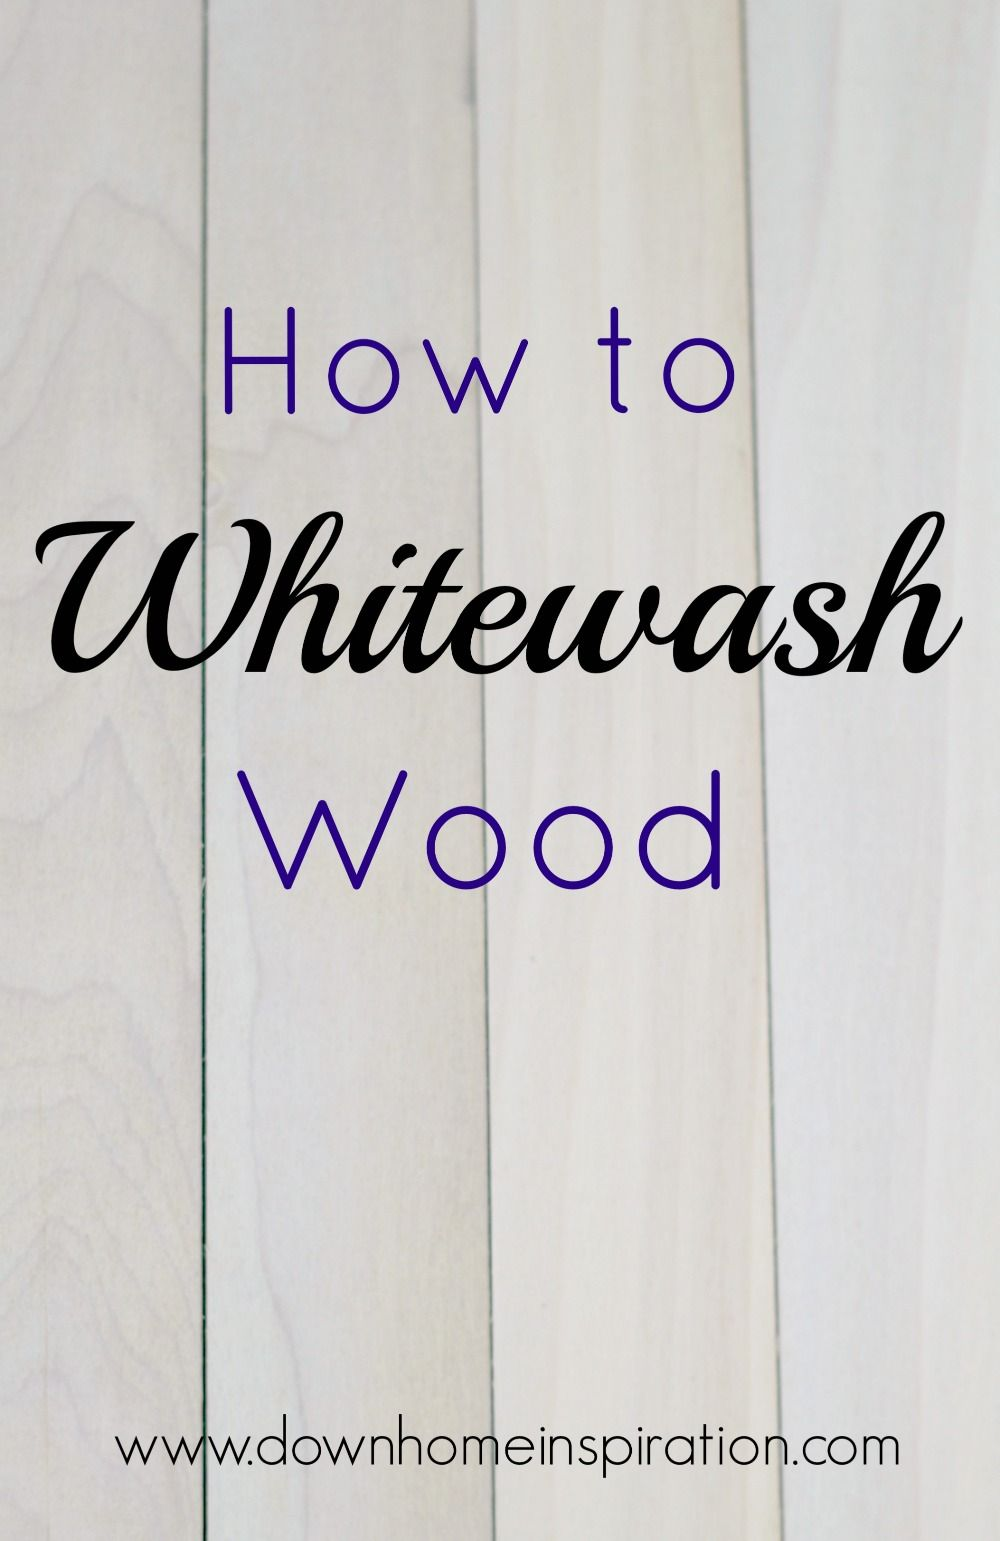 How to Whitewash Wood  Crafting Inspiration and Whitewash